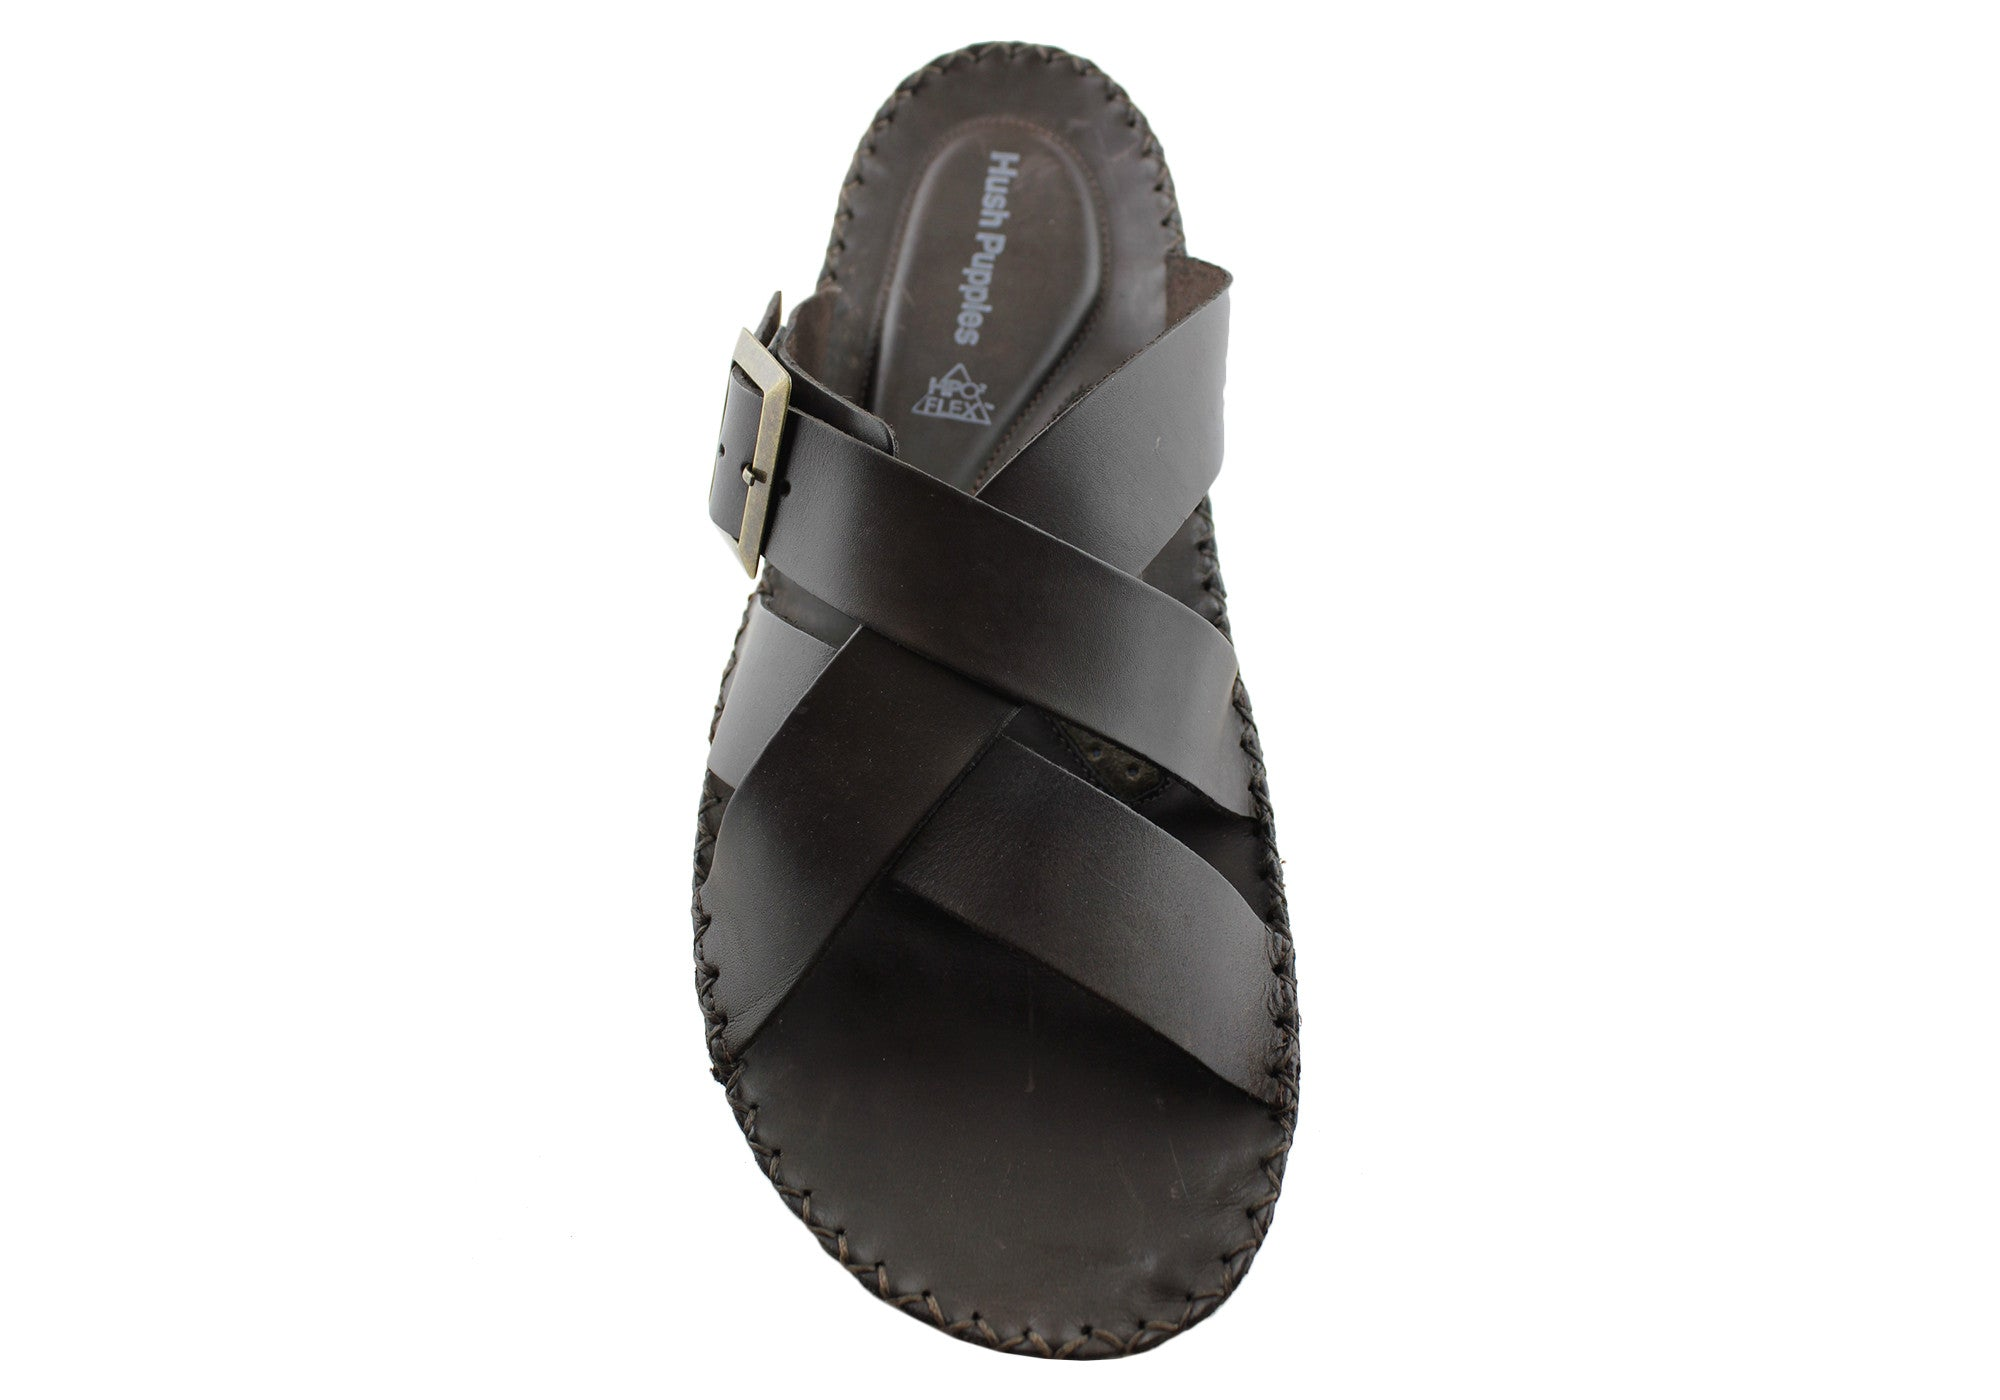 Hush Puppies Mens Leather Morocco Slide/Sandal